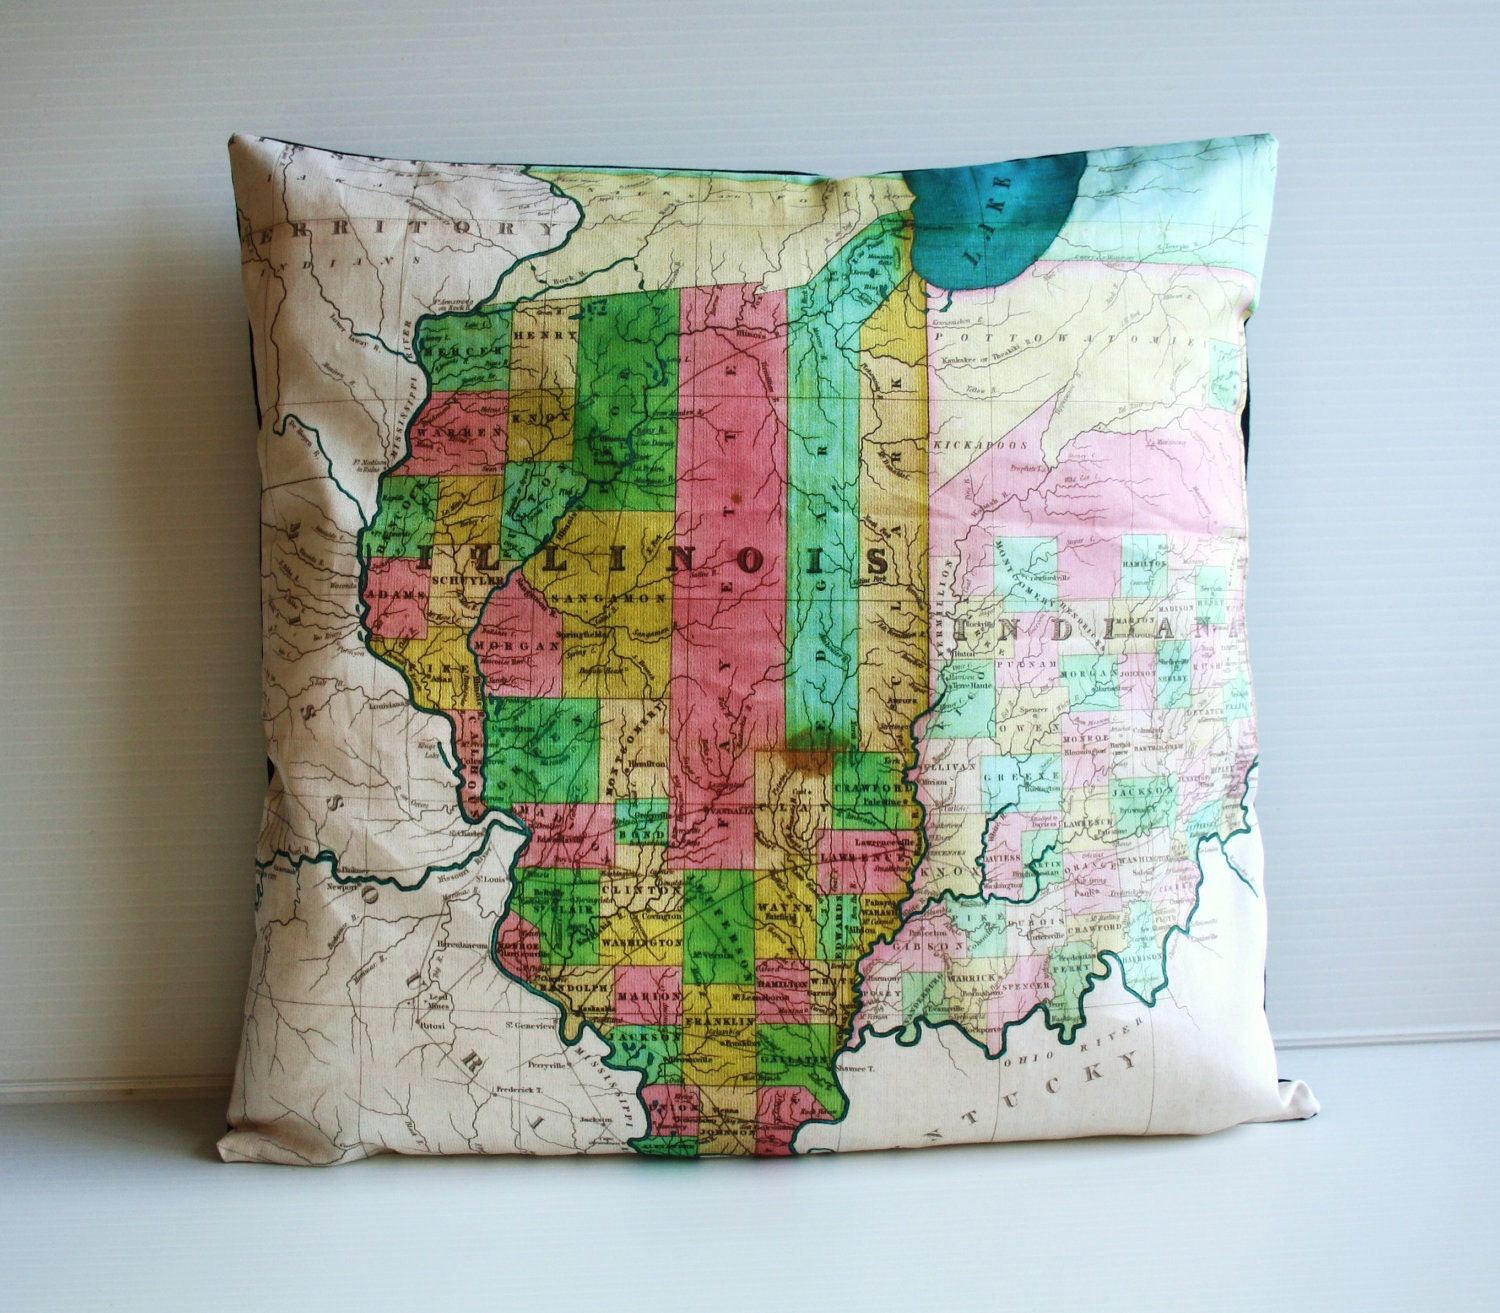 Decorative Pillows With States : Decorative pillow for couch state map ILLINOIS by mybeardedpigeon